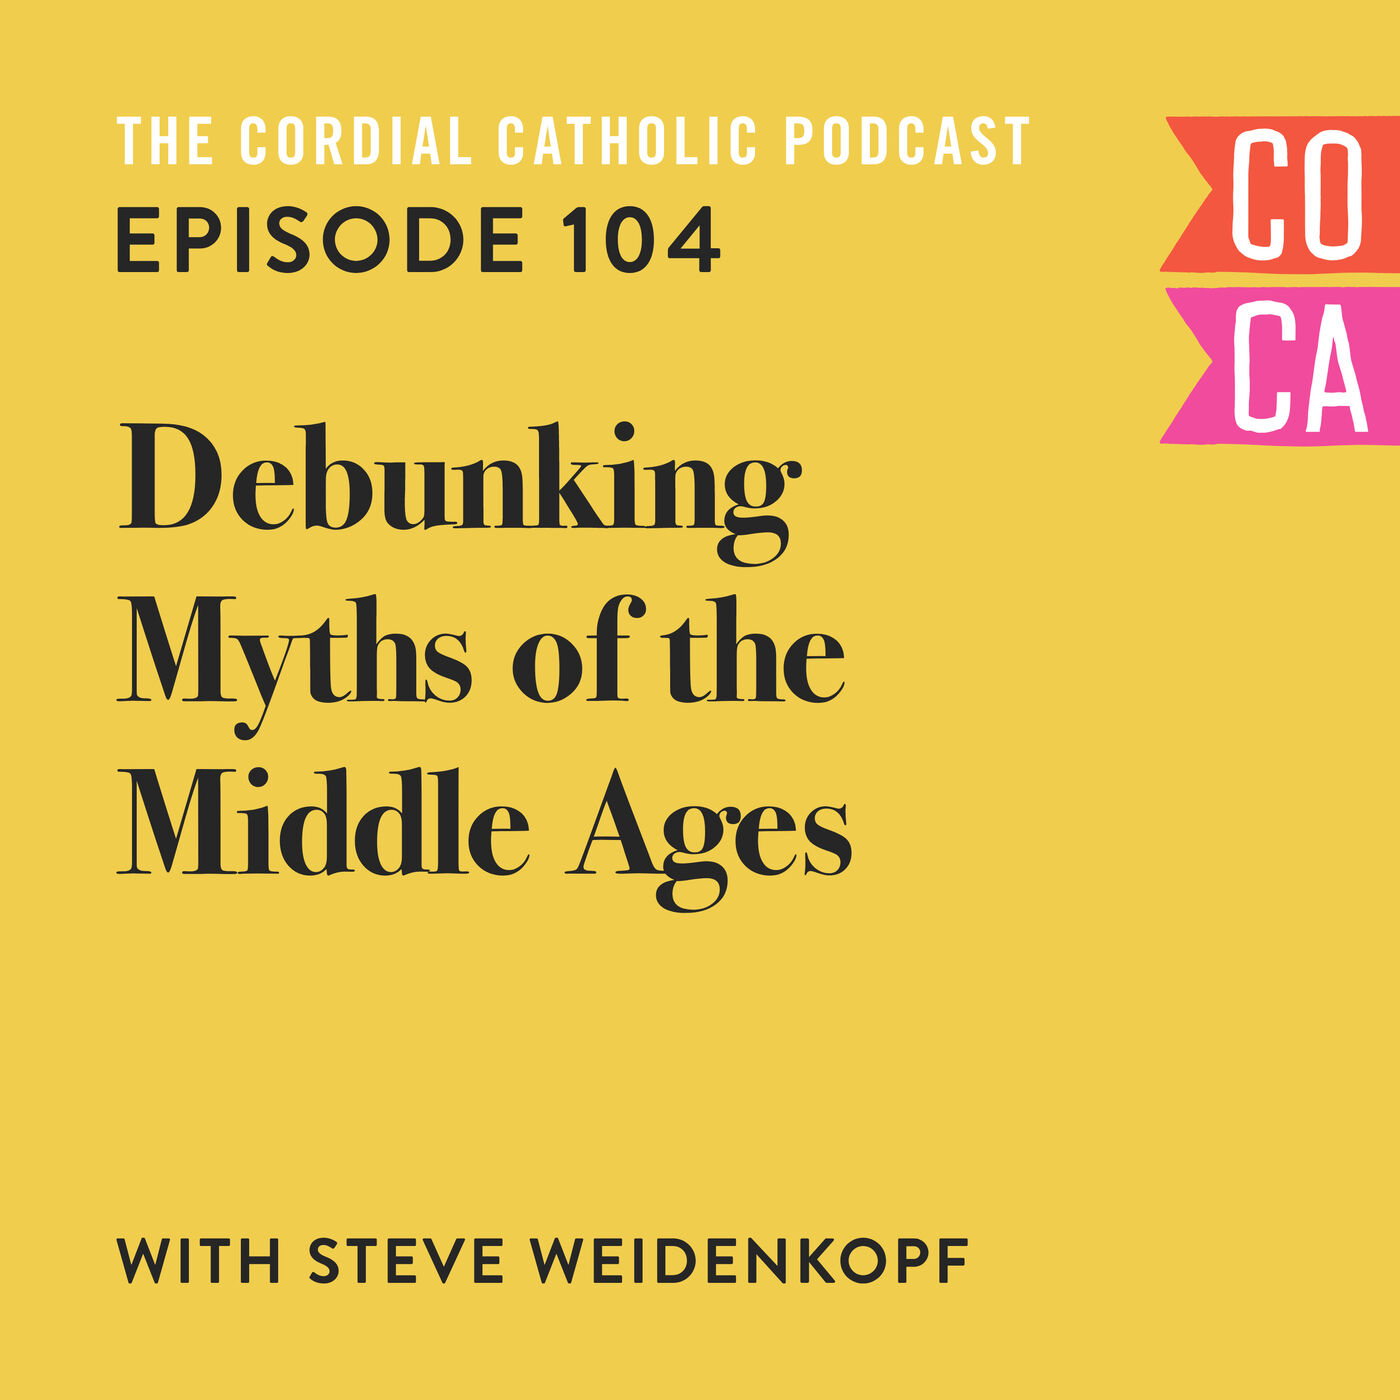 104: Debunking Myths of the Middle Ages (w/ Steve Weidenkopf)